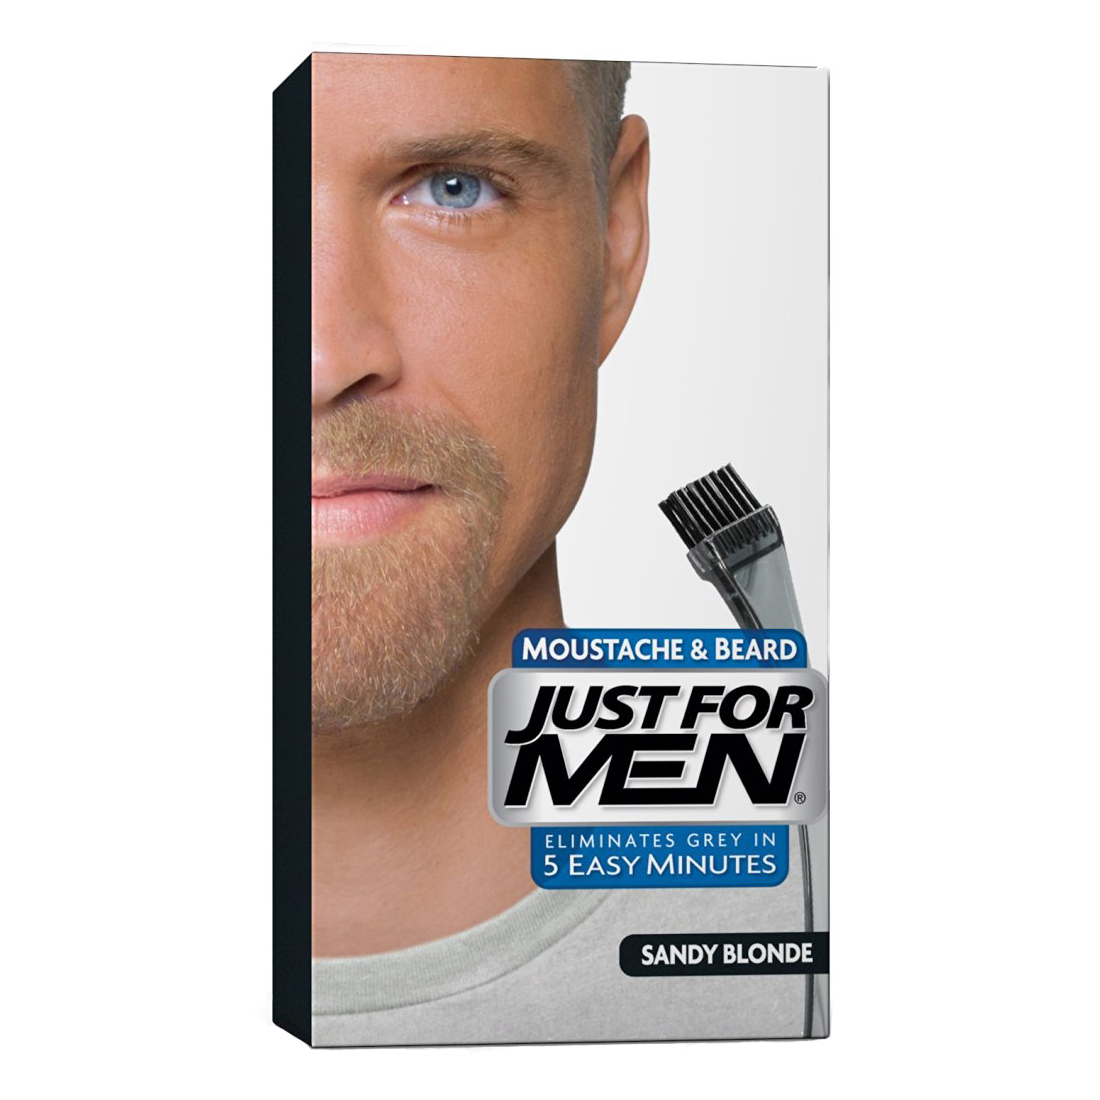 Just For Men Moustache & Beard Brush-In Colour Gel - Choose your colour-Sandy Blonde M10-0